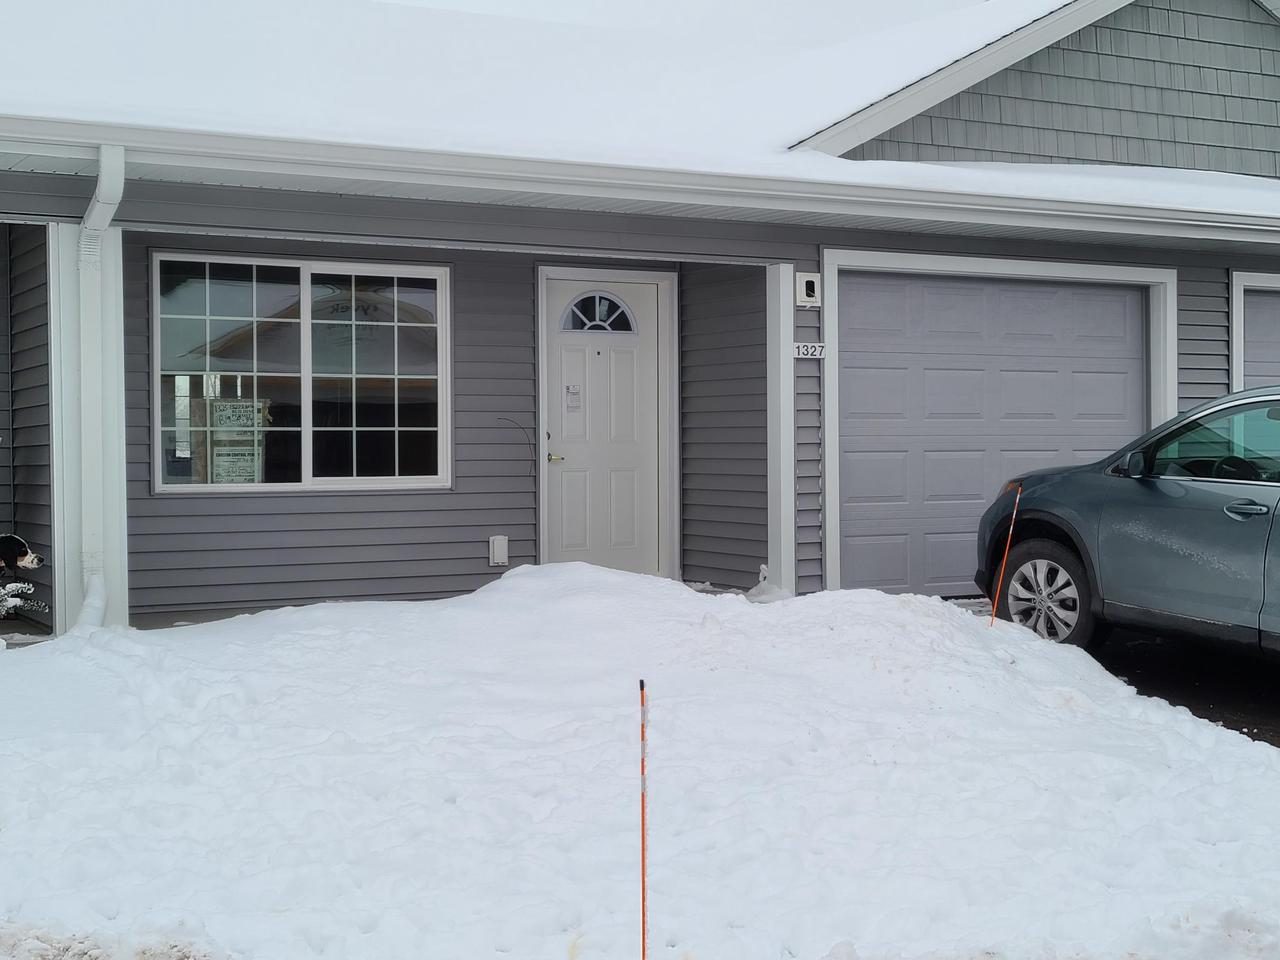 New Construction Senior Side by Side Condos.  2 bedroom, 2 bathroom, 1 car garage.  No steps, wide doorways, covered porch.  $197,900 includes basement plus you can add options and choose finish colors, tops and cabinets/trim.  2-3 month occupancy